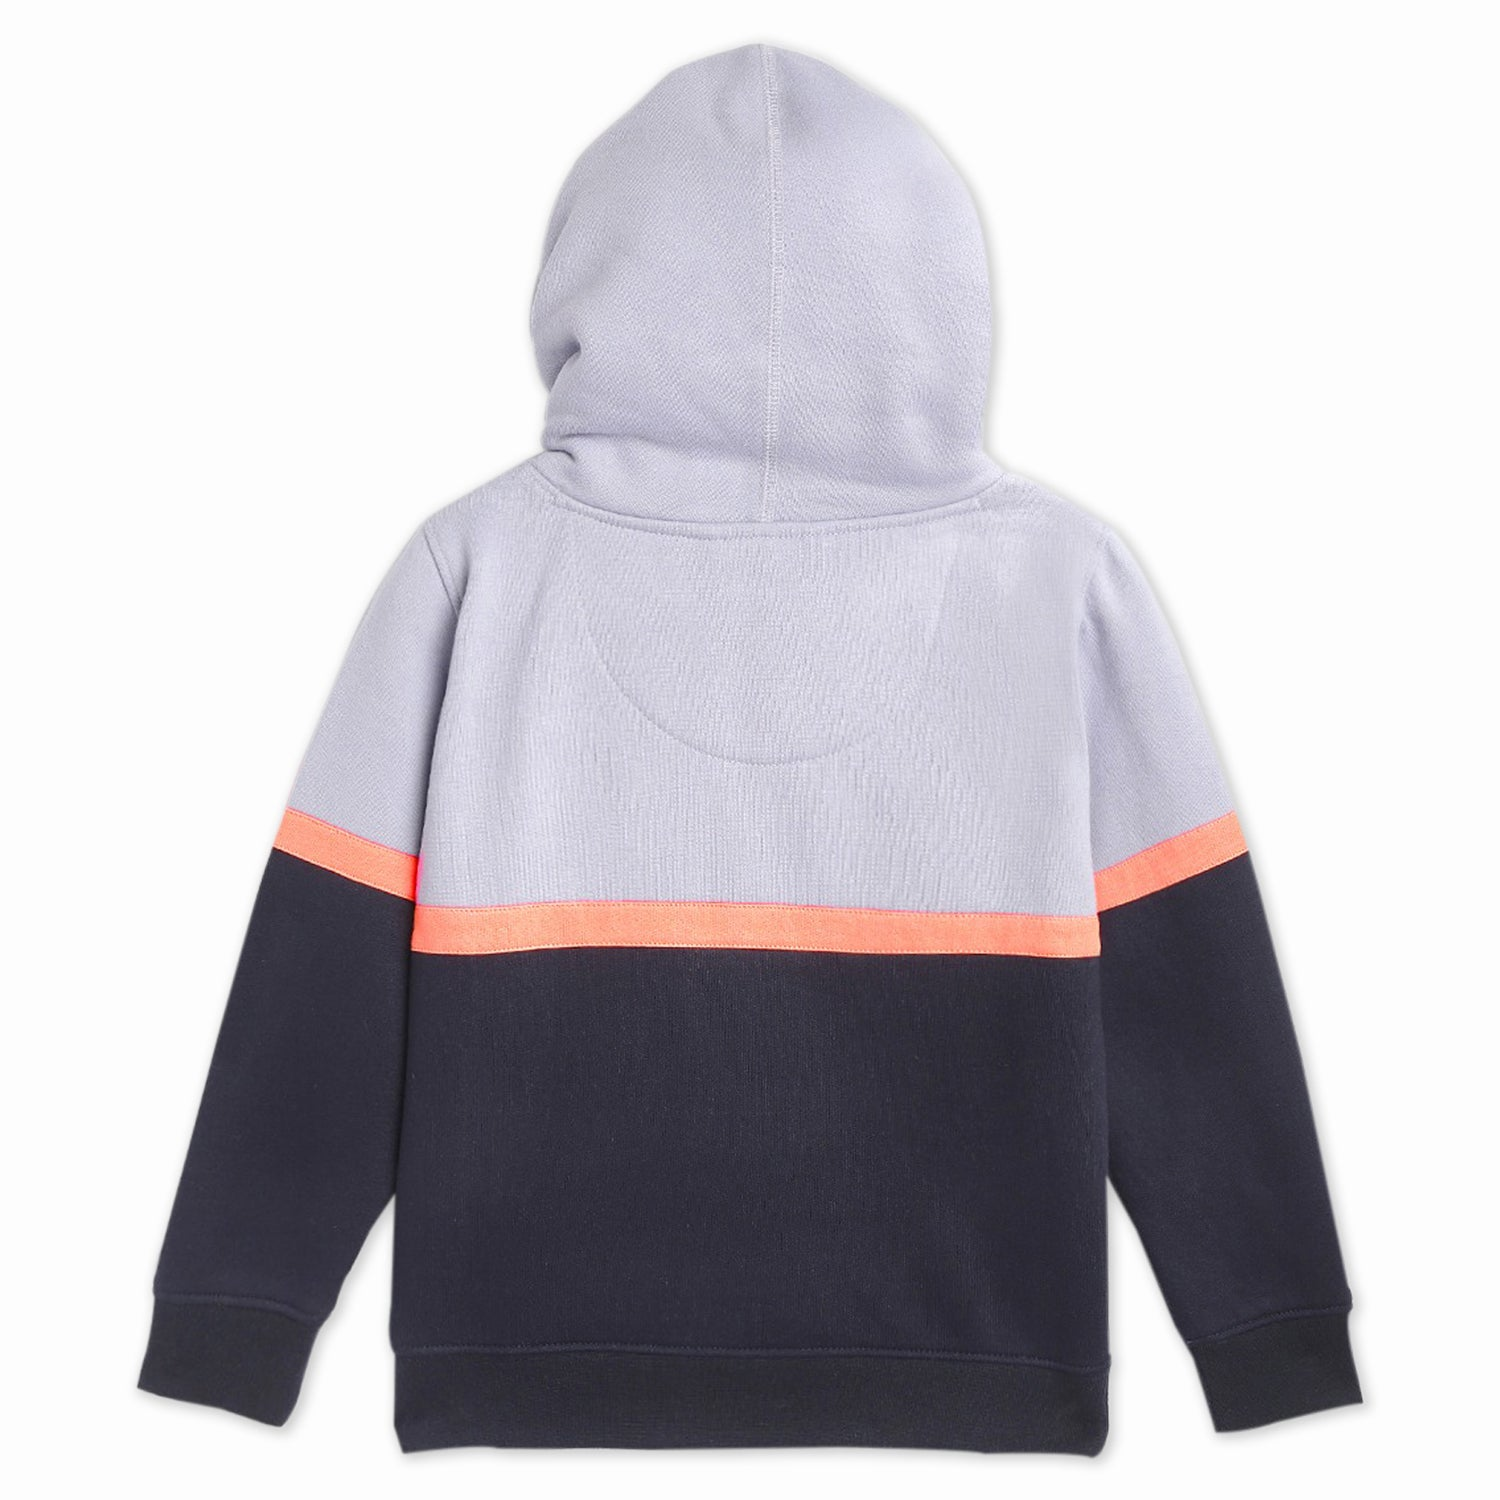 Cherry-Crumble-Kids-Full-Sleeve-Regular-Sleeve-Hooded-Colorblock-Pullover-Sweatshirt